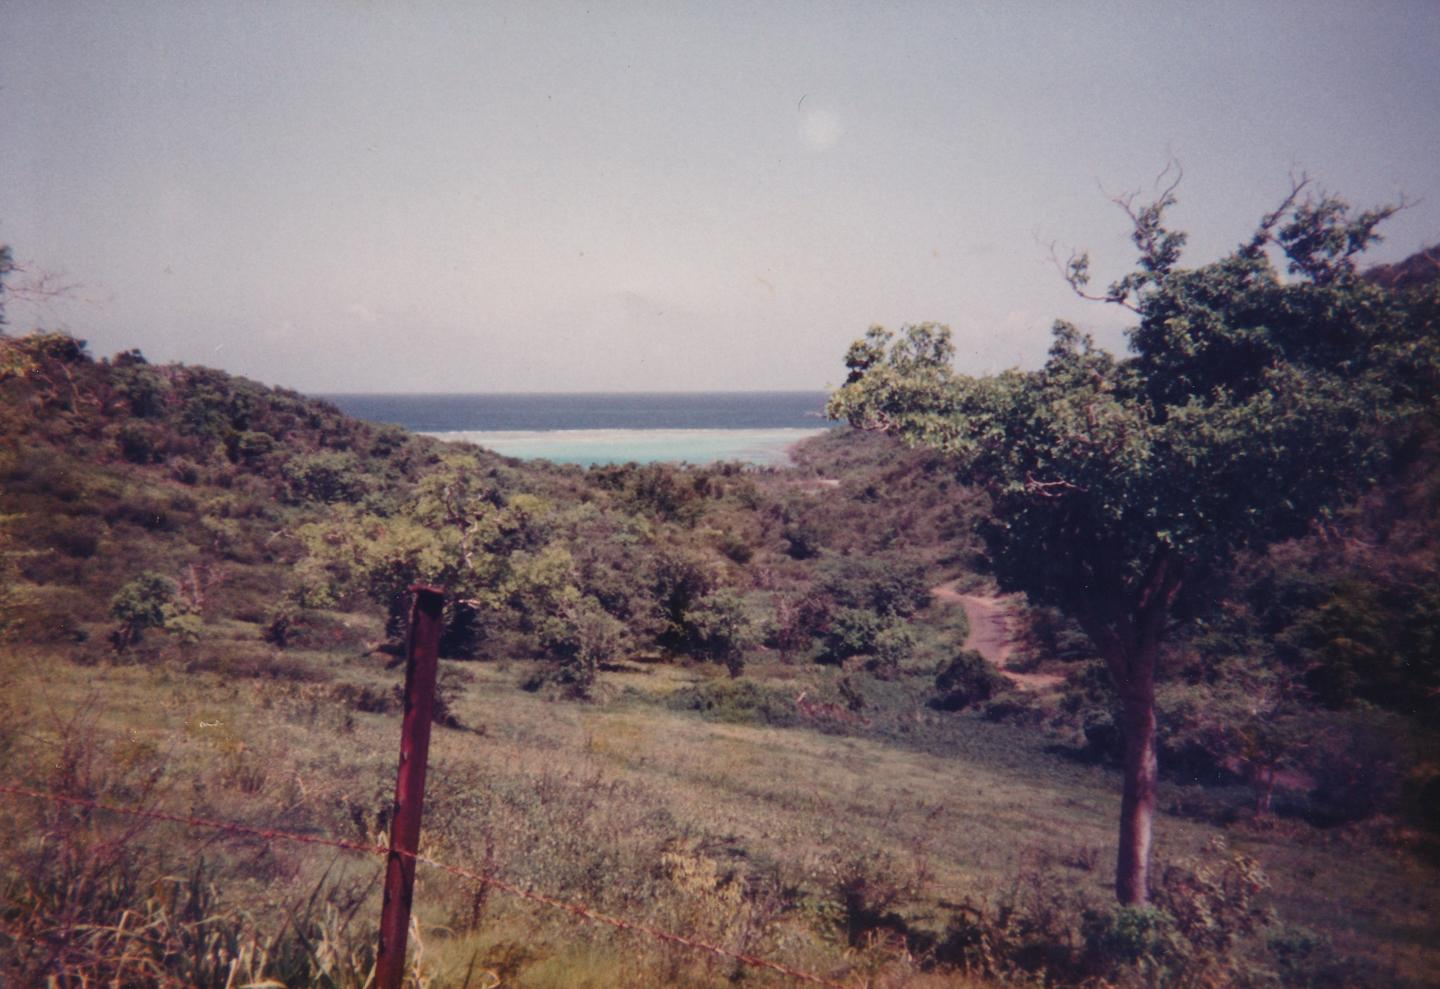 Landscapes my father and I used to visit.